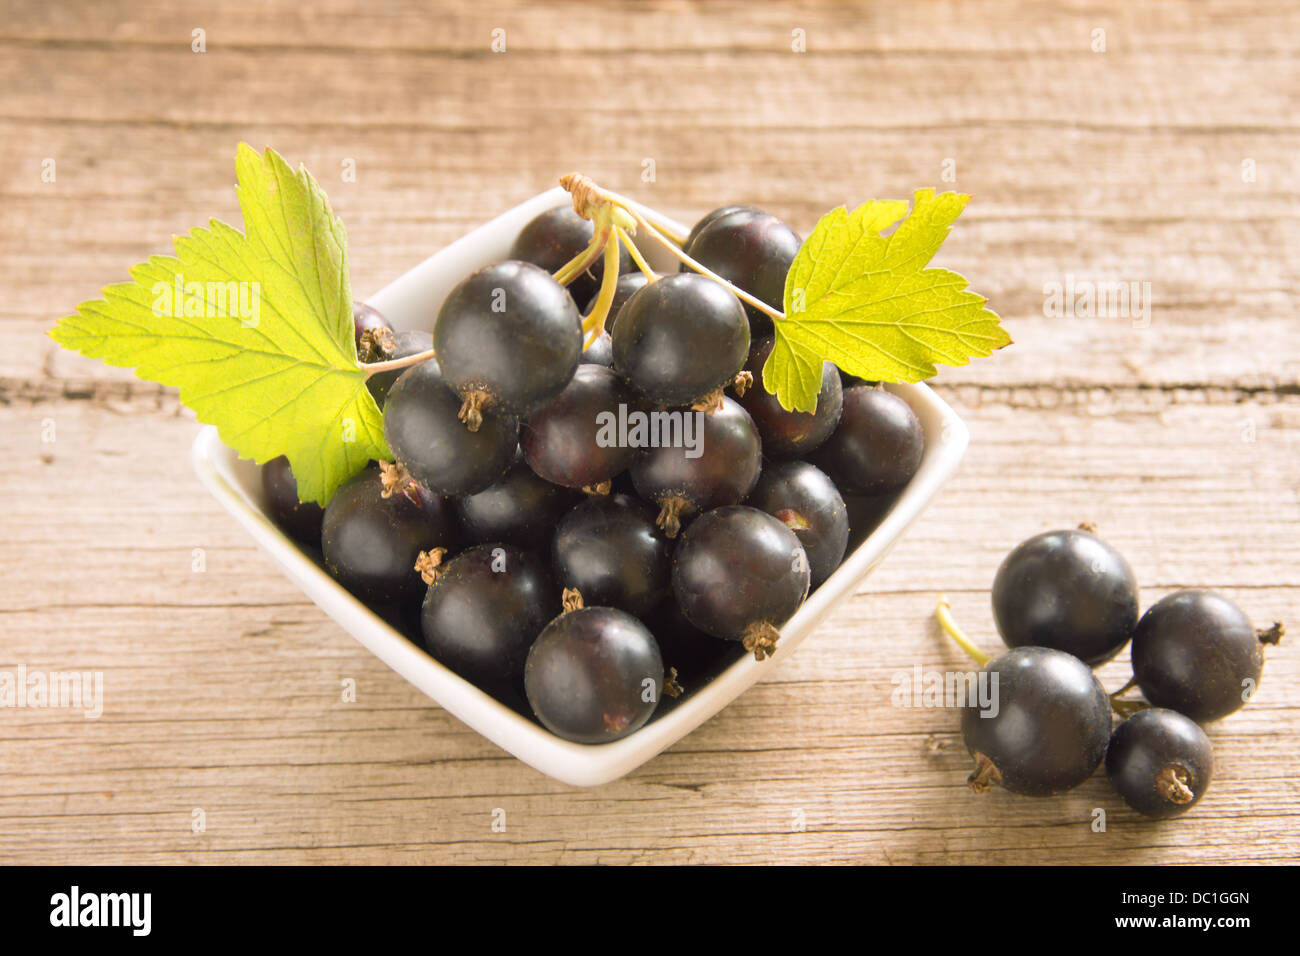 Black currant with green leaves on rustic old wooden background, horizontal, close up Stock Photo